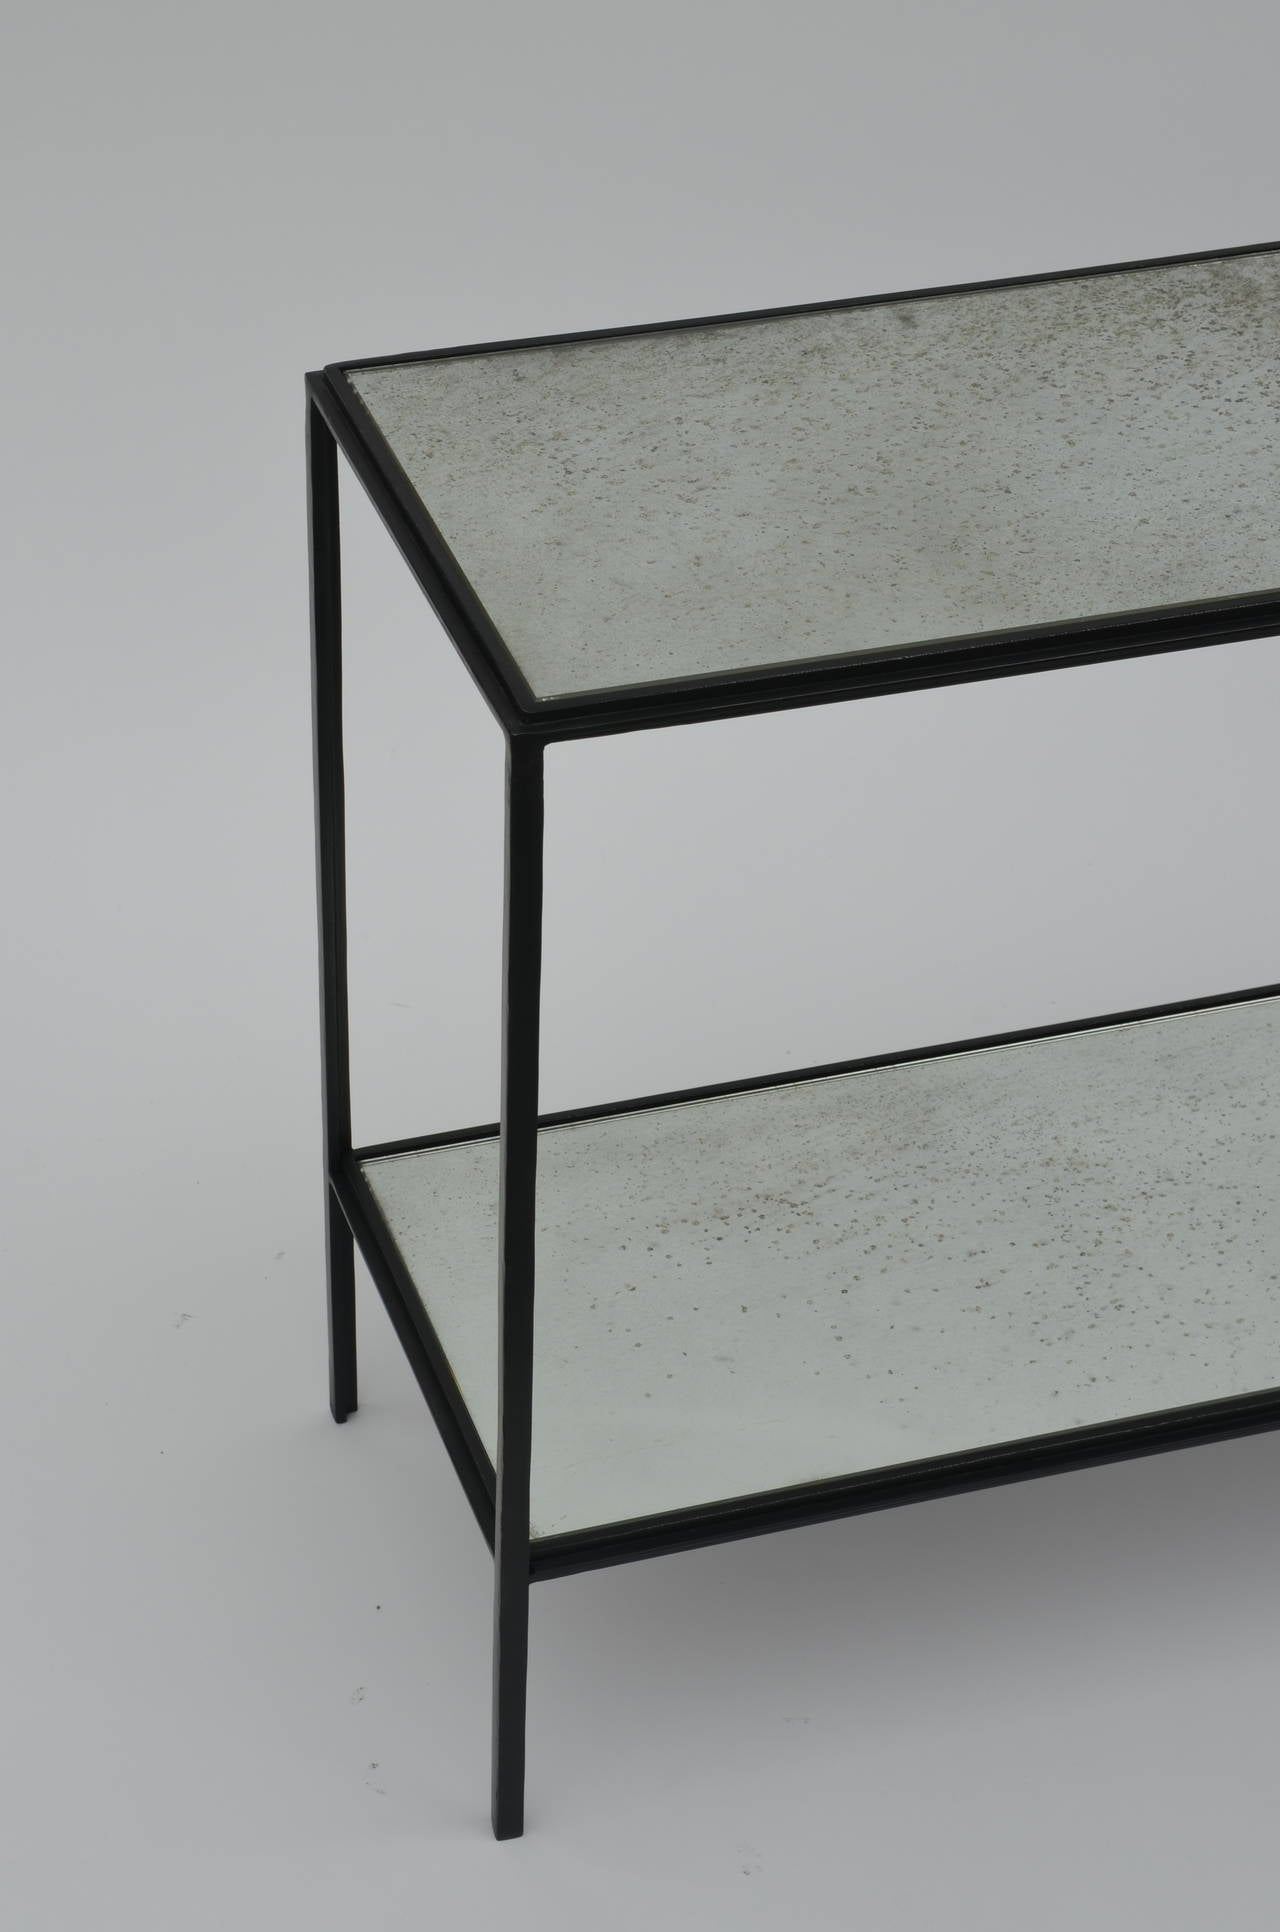 Contemporary Pair of Narrow 'Rectiligne' Mirrored Wrought Iron End Tables by Design Frères For Sale